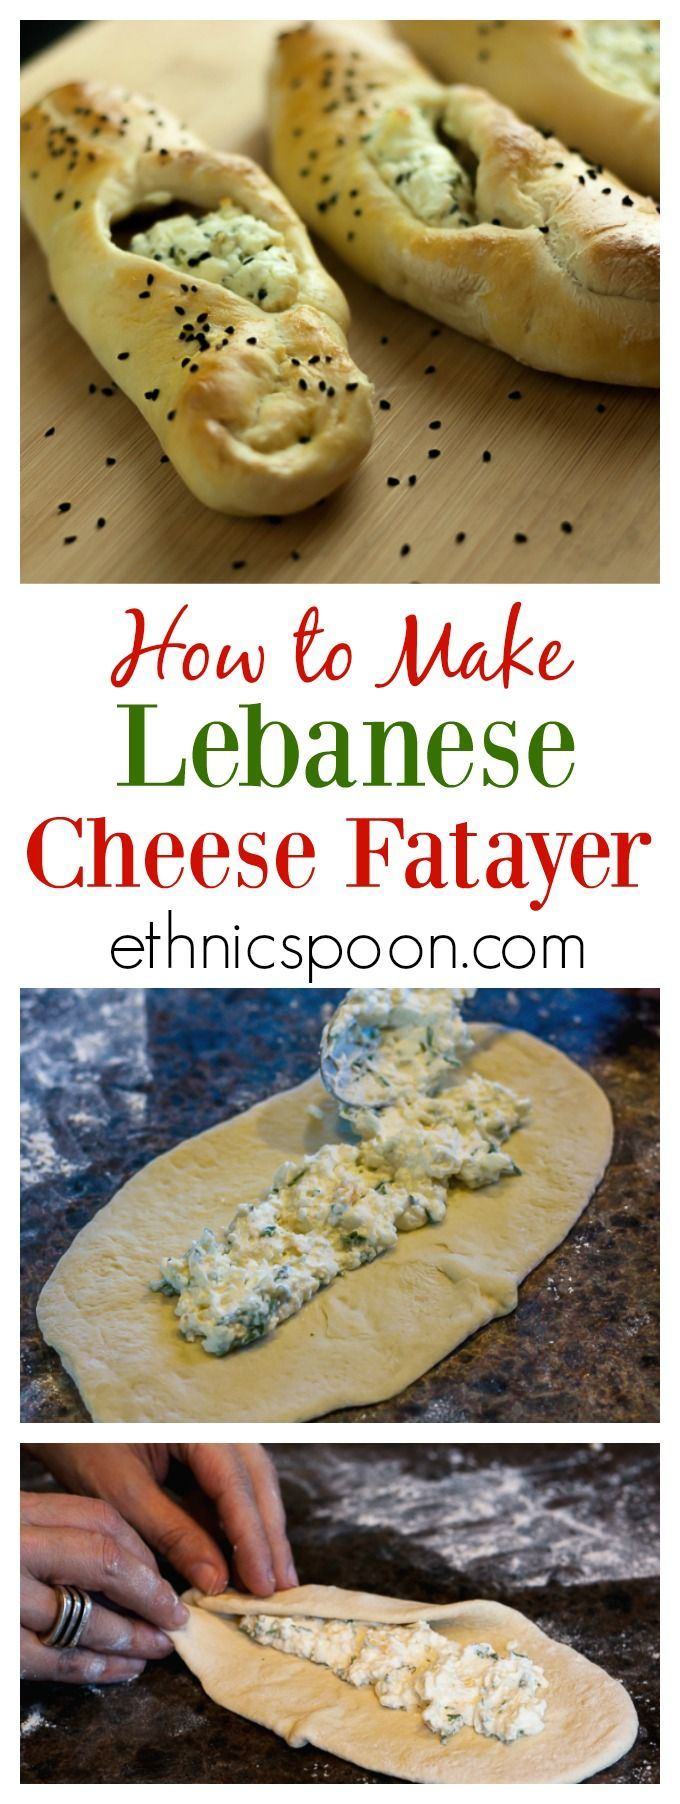 A really simple recipe to make Lebanese cheese fayer with pizza dough, feta, yogurt, mozzarella and chopped parsley. Delicious, simple and exotic too! | ethnicspoon.com